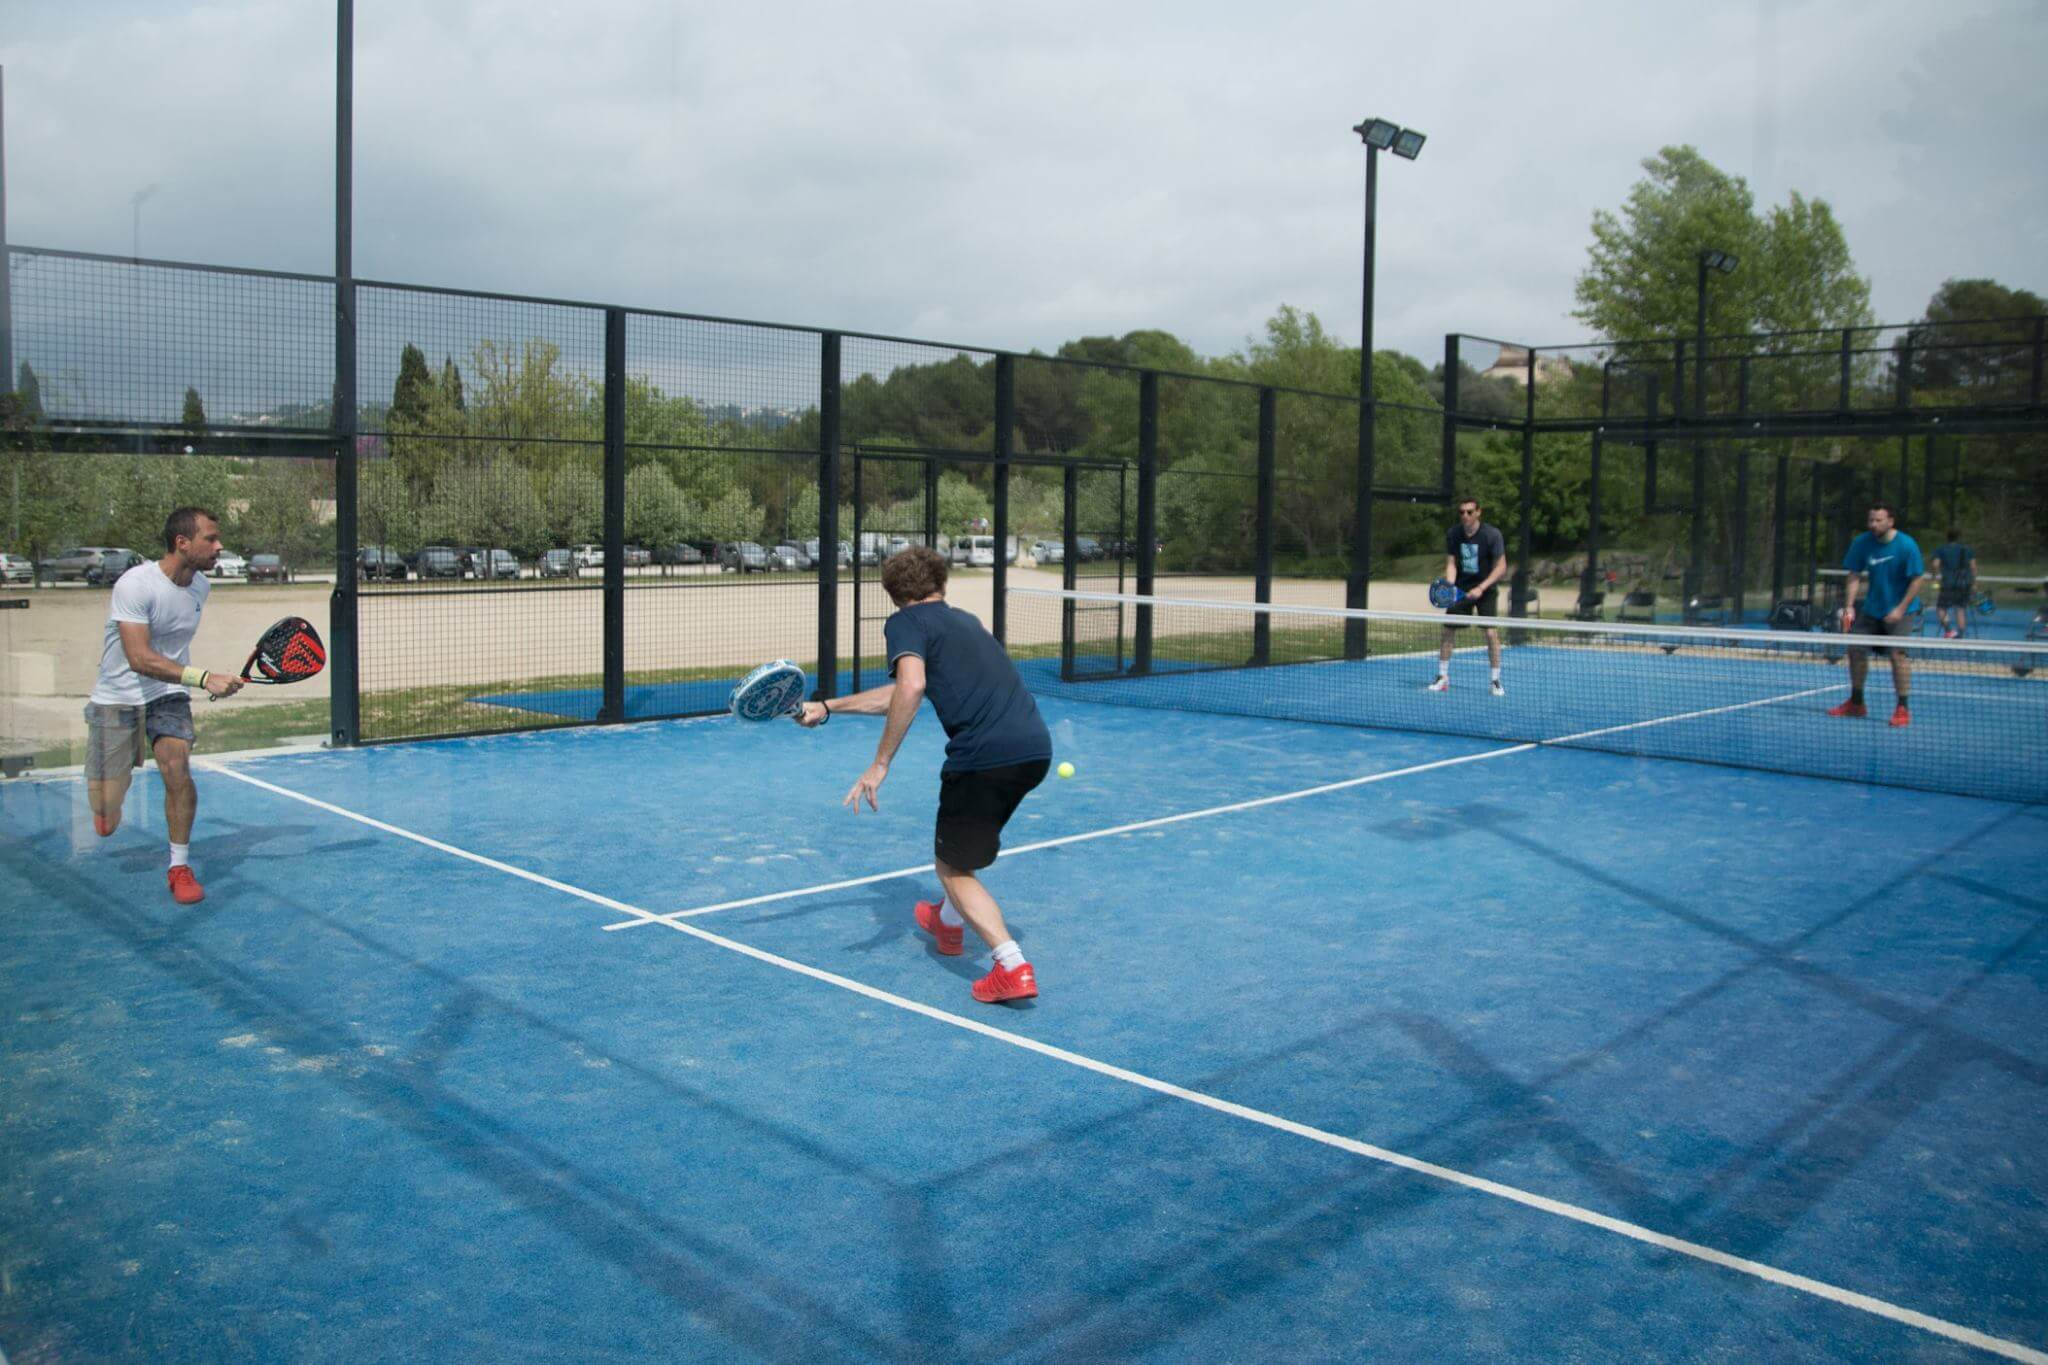 The good qualifiers of the Mouans-Sartoux Open